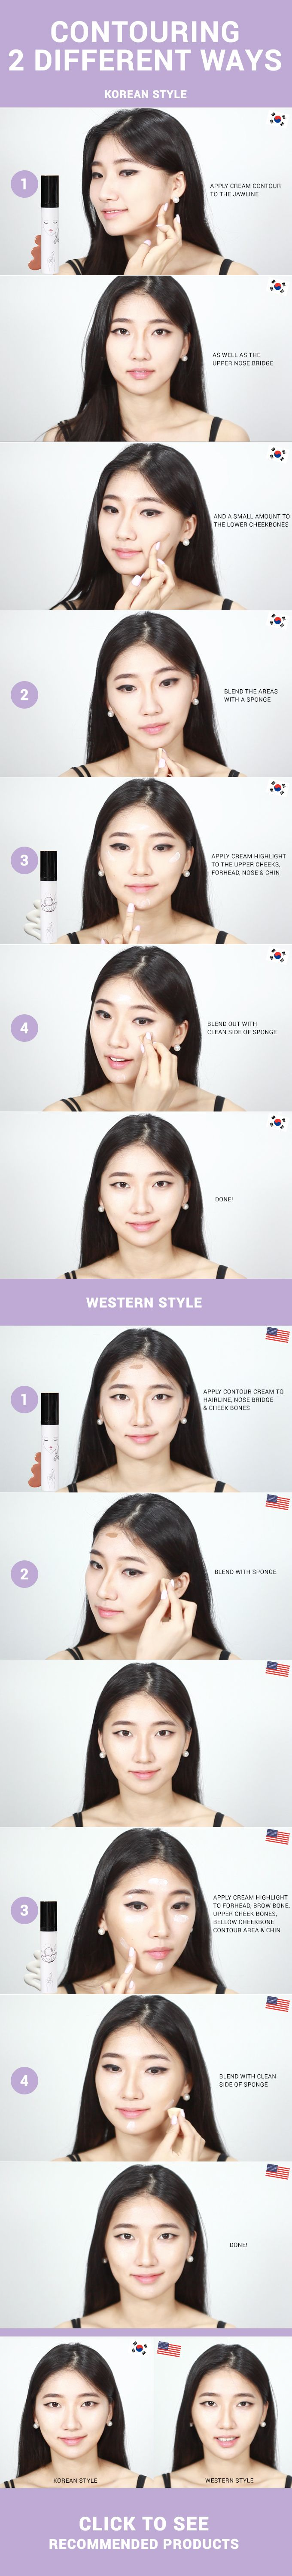 More To Makeup Contouring Then You May Think